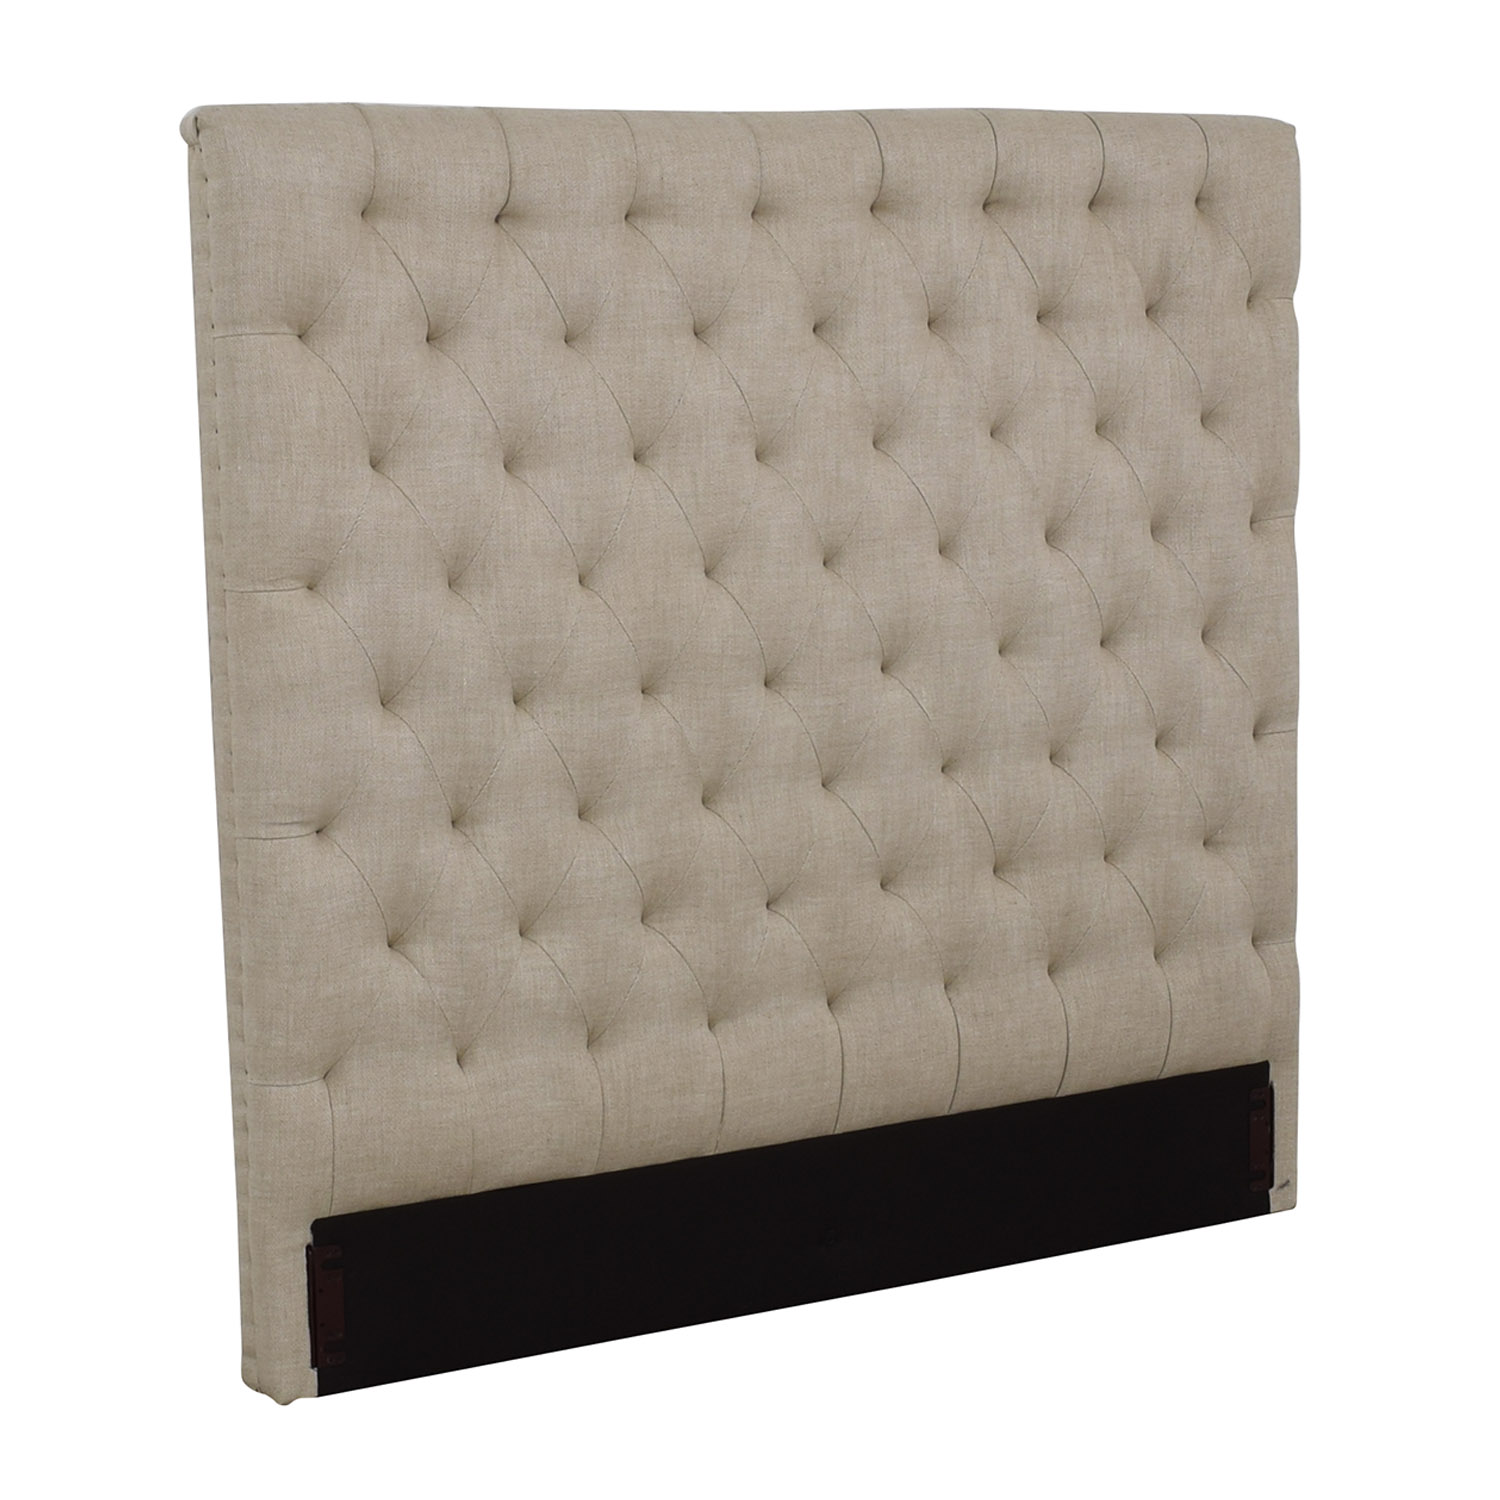 Restoration Hardware Restoration Hardware Chesterfield Fabric Panel Headboard Beds